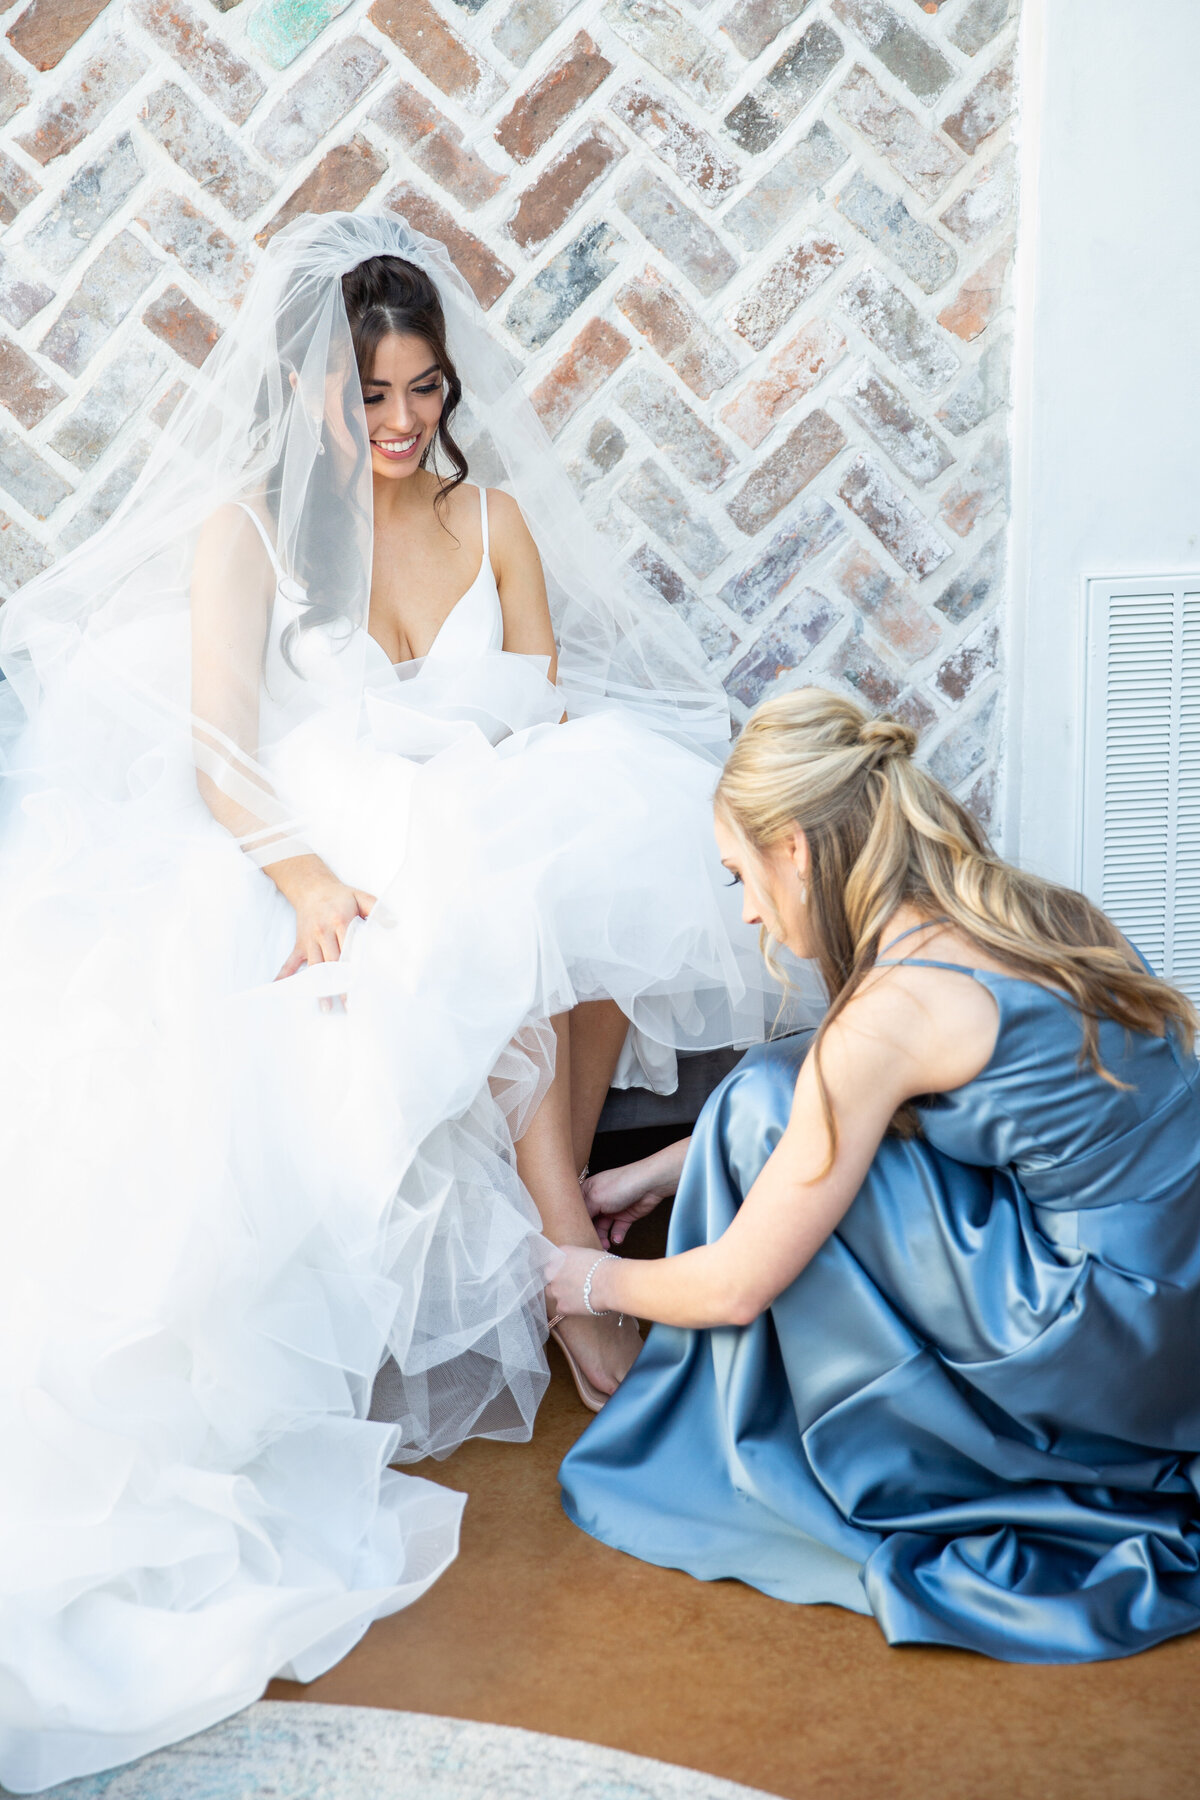 Maid of Honor Putting on Bride's Shoes